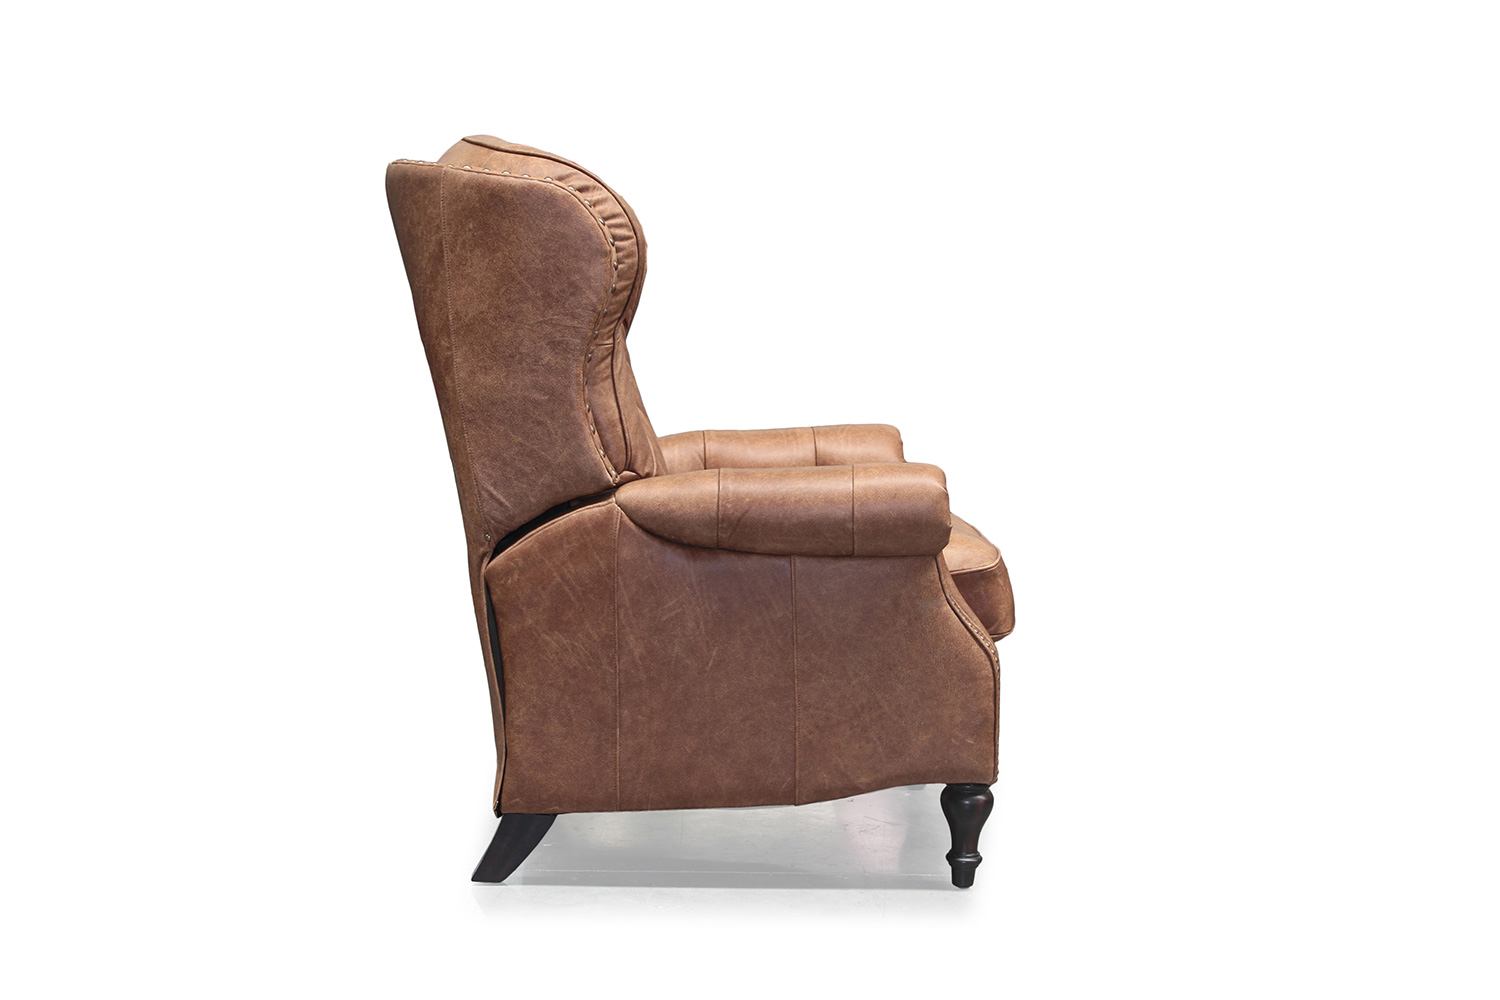 Barcalounger KendAll Recliner Chair - Sanded Bomber/All top grain Leather